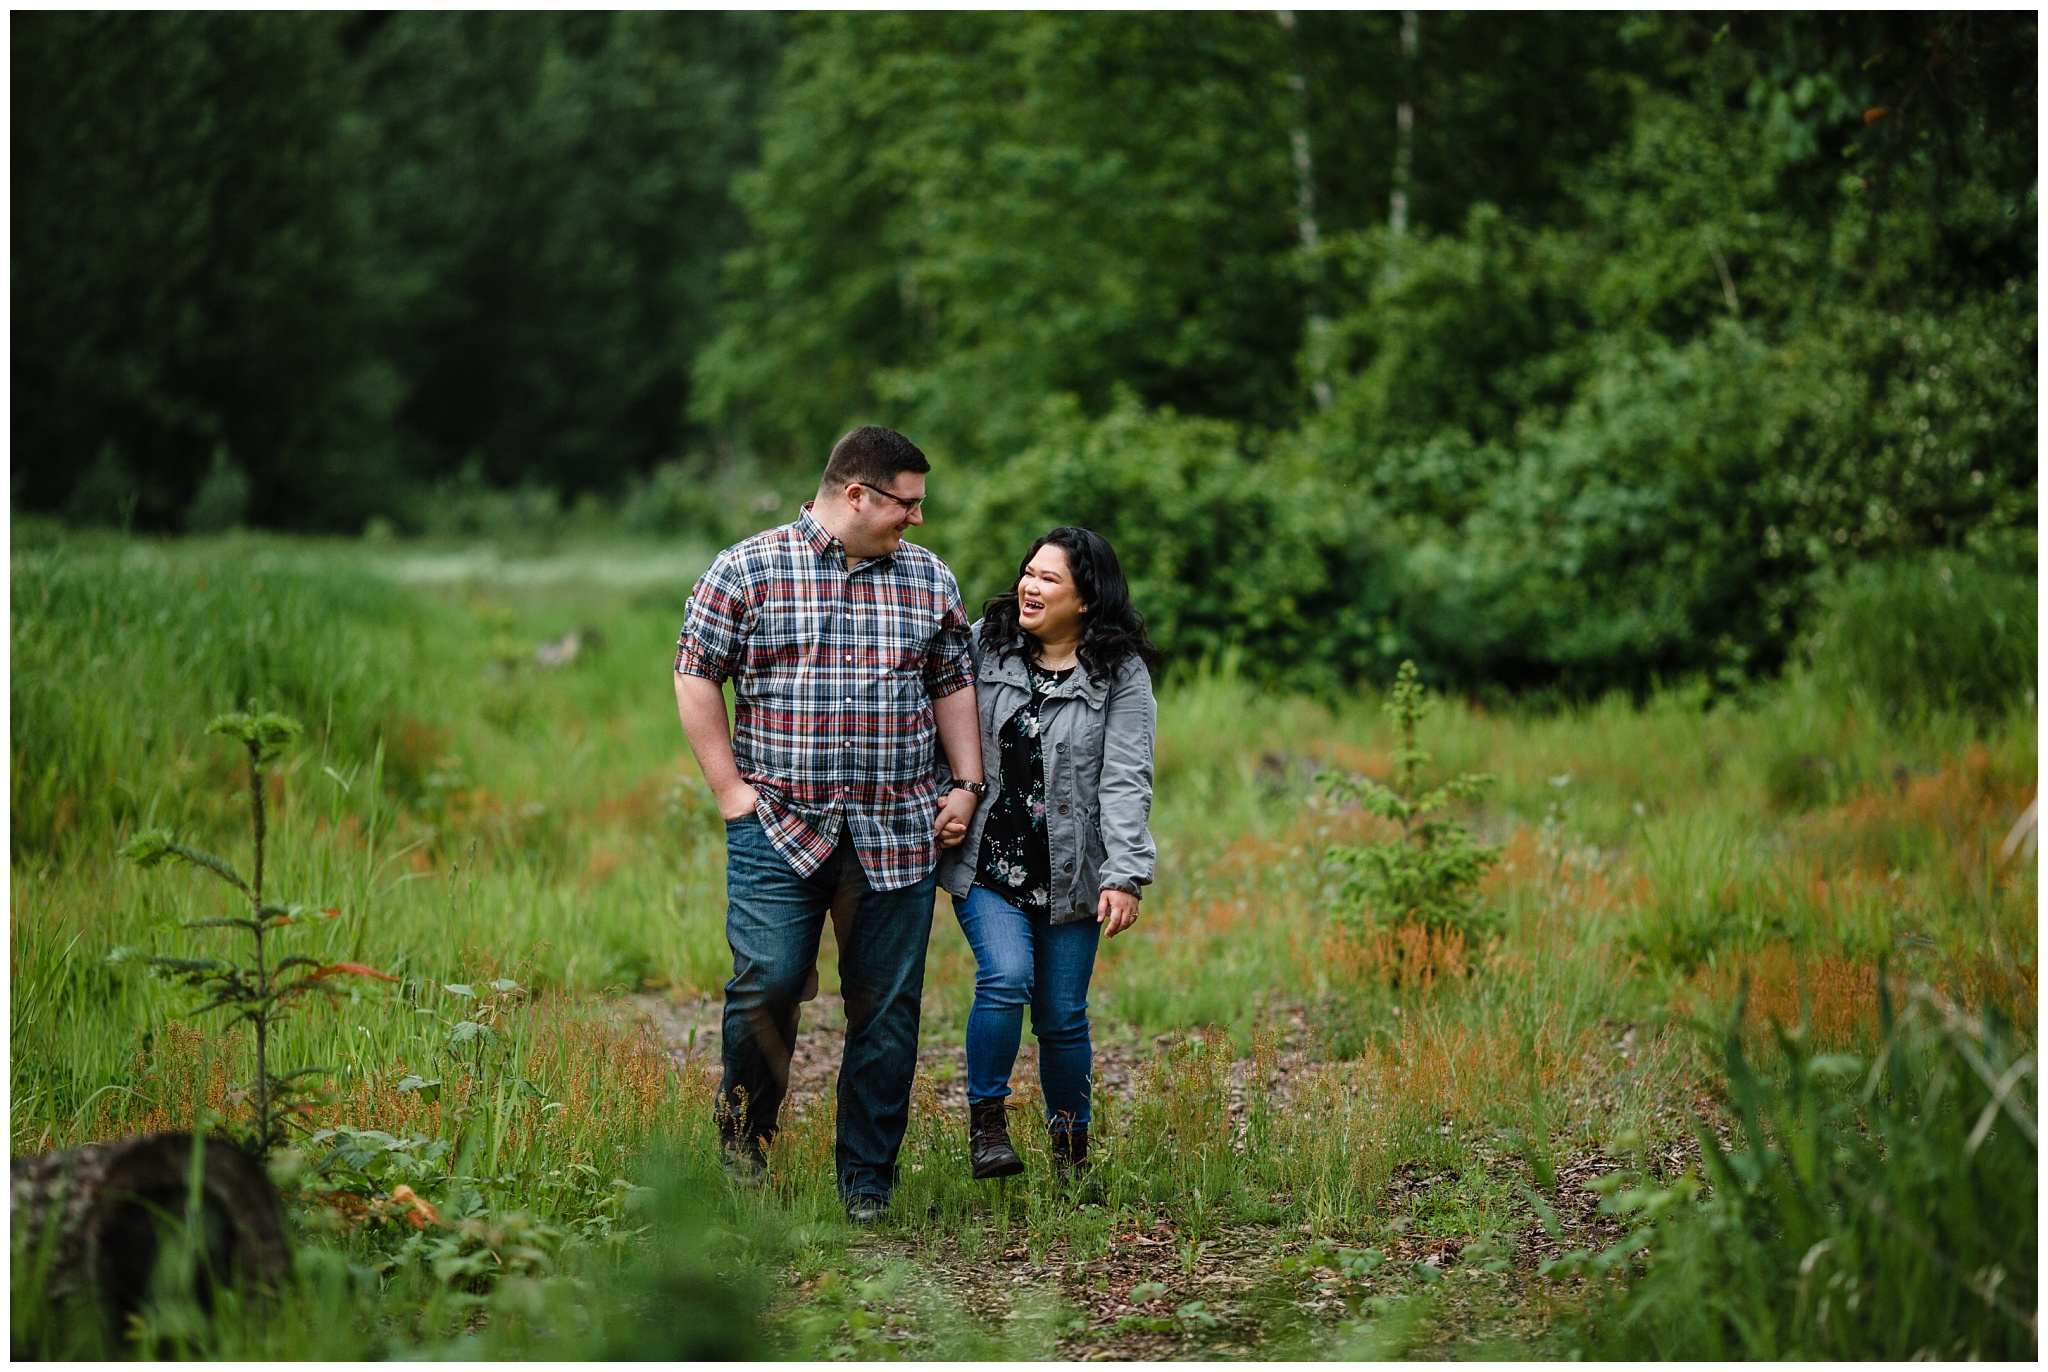 McKay Creek Park Abbotsford Spring Engagement Photos Happy Forest Trees Green Candid Fun Couple Photos_0009.jpg